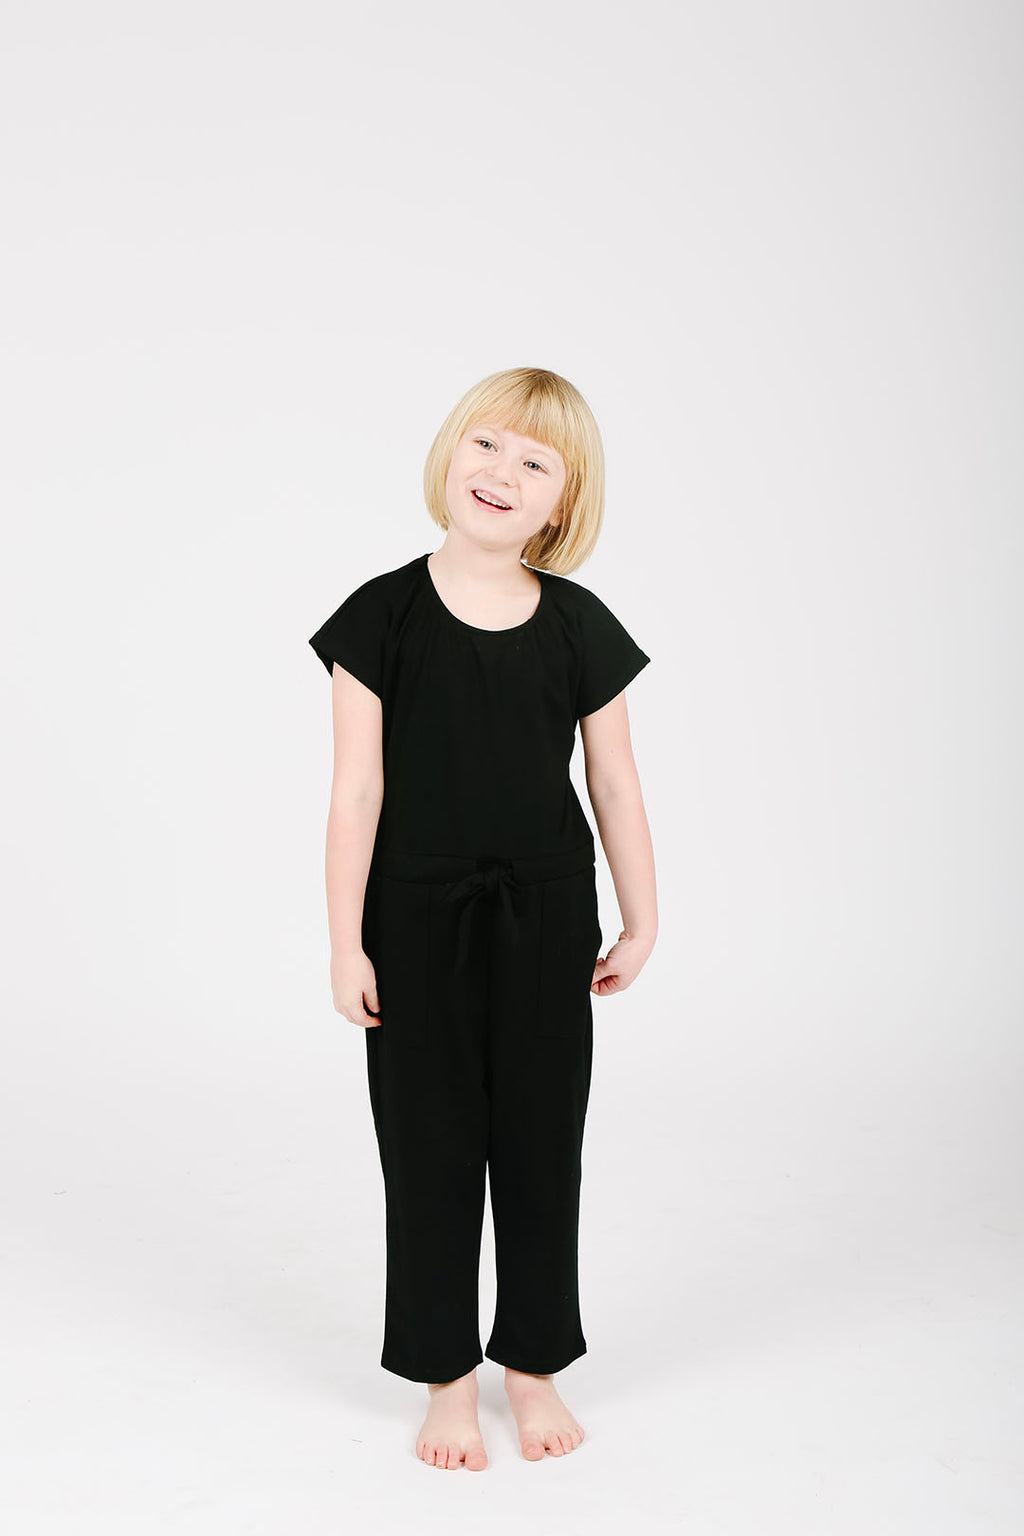 Pips: The Bianca Kids Cinch Jumpsuit in Black